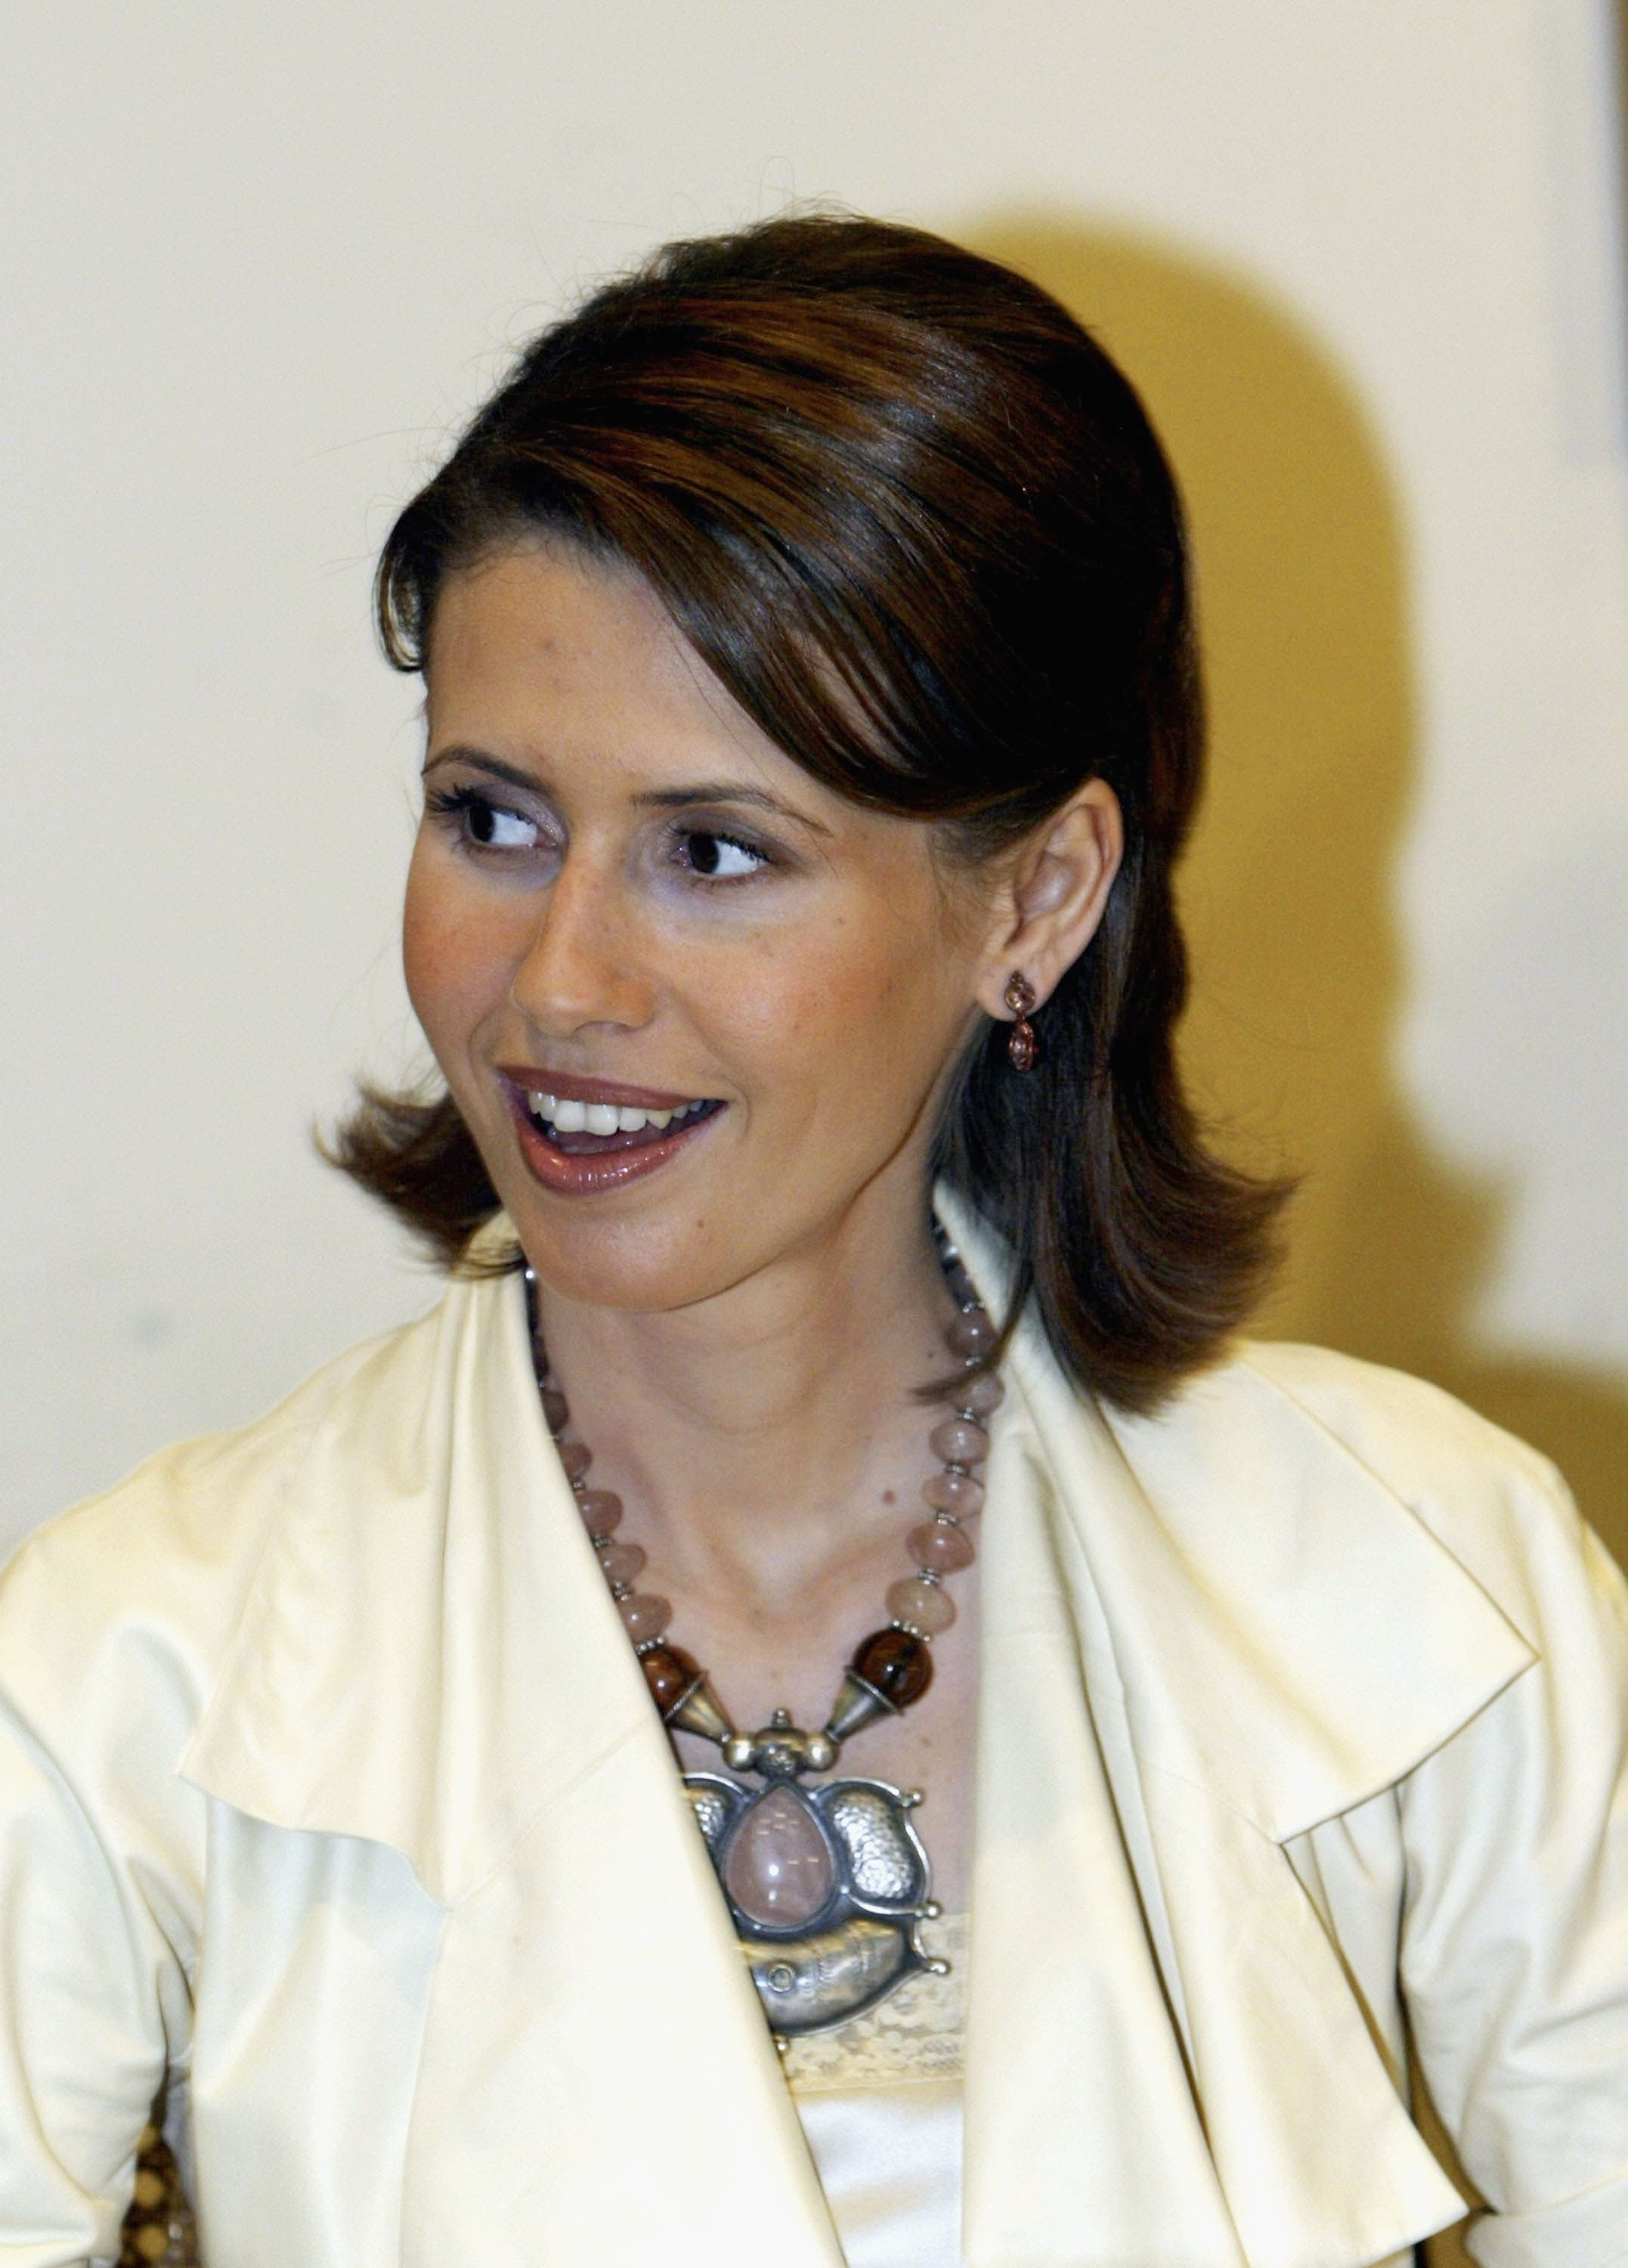 """President Bashar Al-Assad Wife, Asma: """"the freshest and most magnetic of first ladies."""" with her simple chic style."""